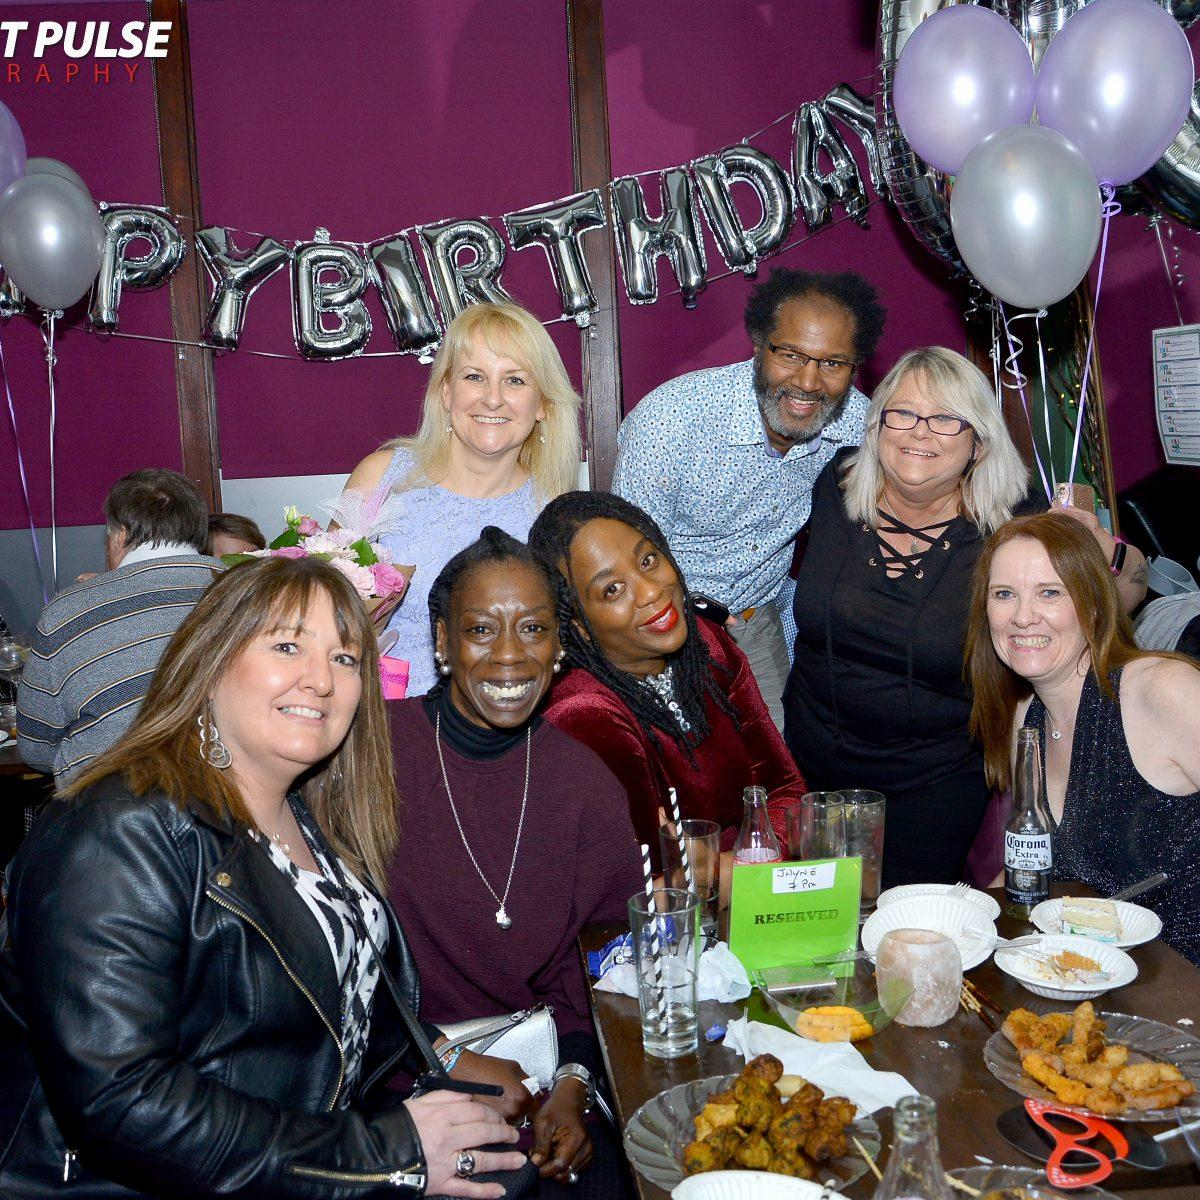 PARTY PHOTOGRAPHY SERVICES IN LONDON